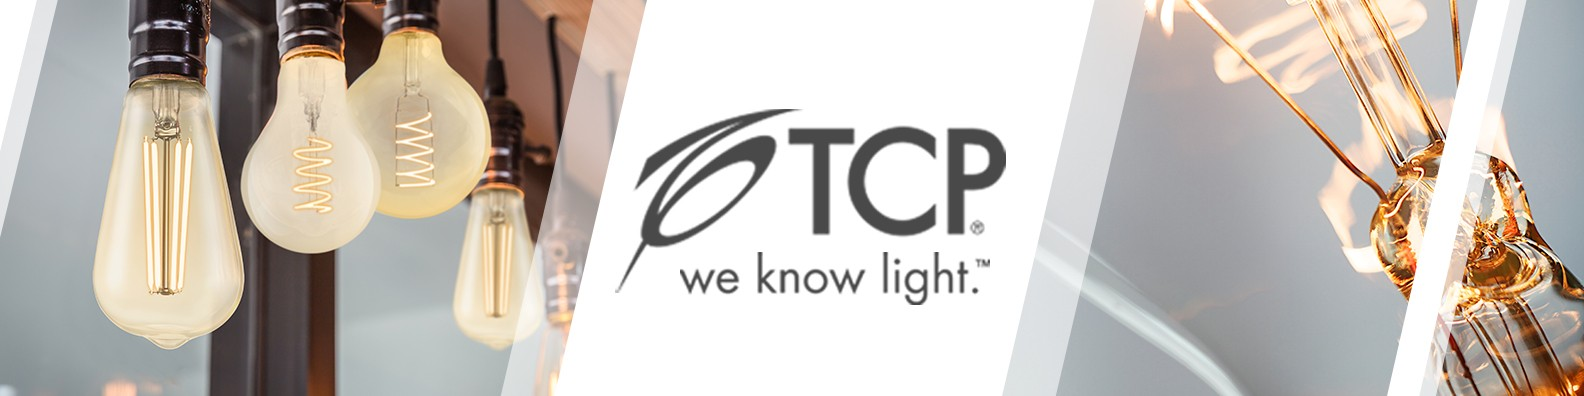 Tcp Lighting Linkedin